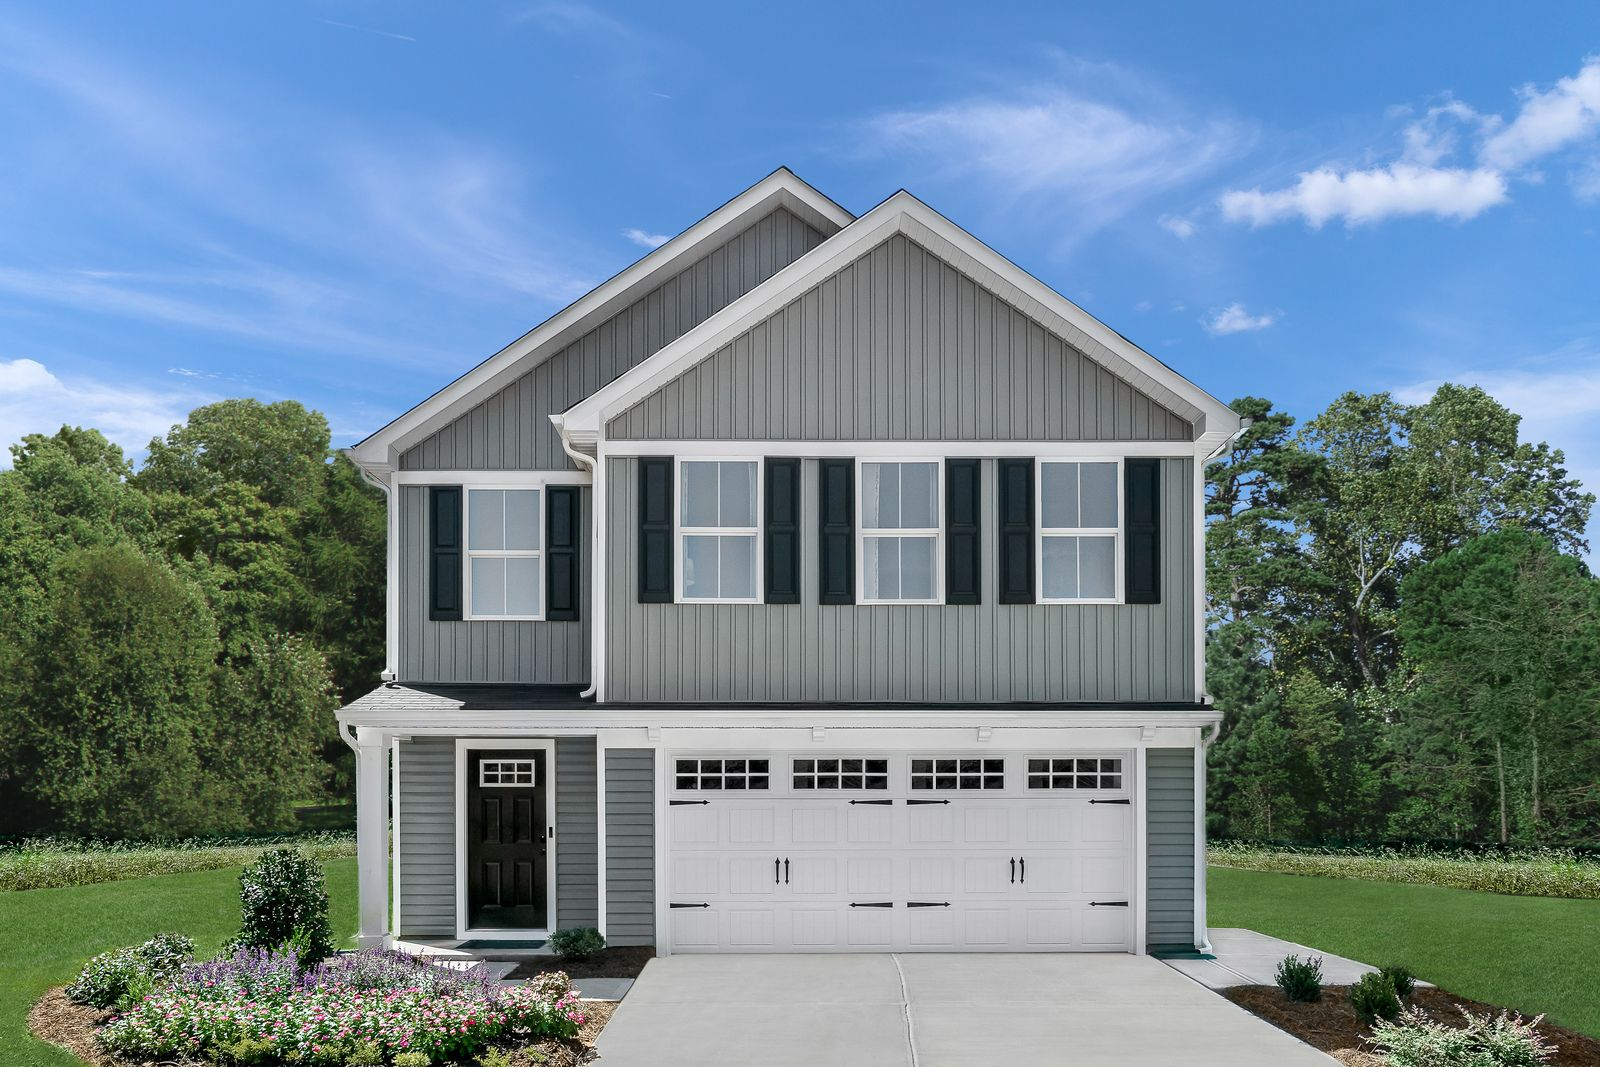 LAST CHANCE to Own for the same or less than rent & 0% down financing available:ONLY 4 HOMESITES REMAIN! Located across from the town's park, local shopping, and dining. Interested?Schedule an appointment today!